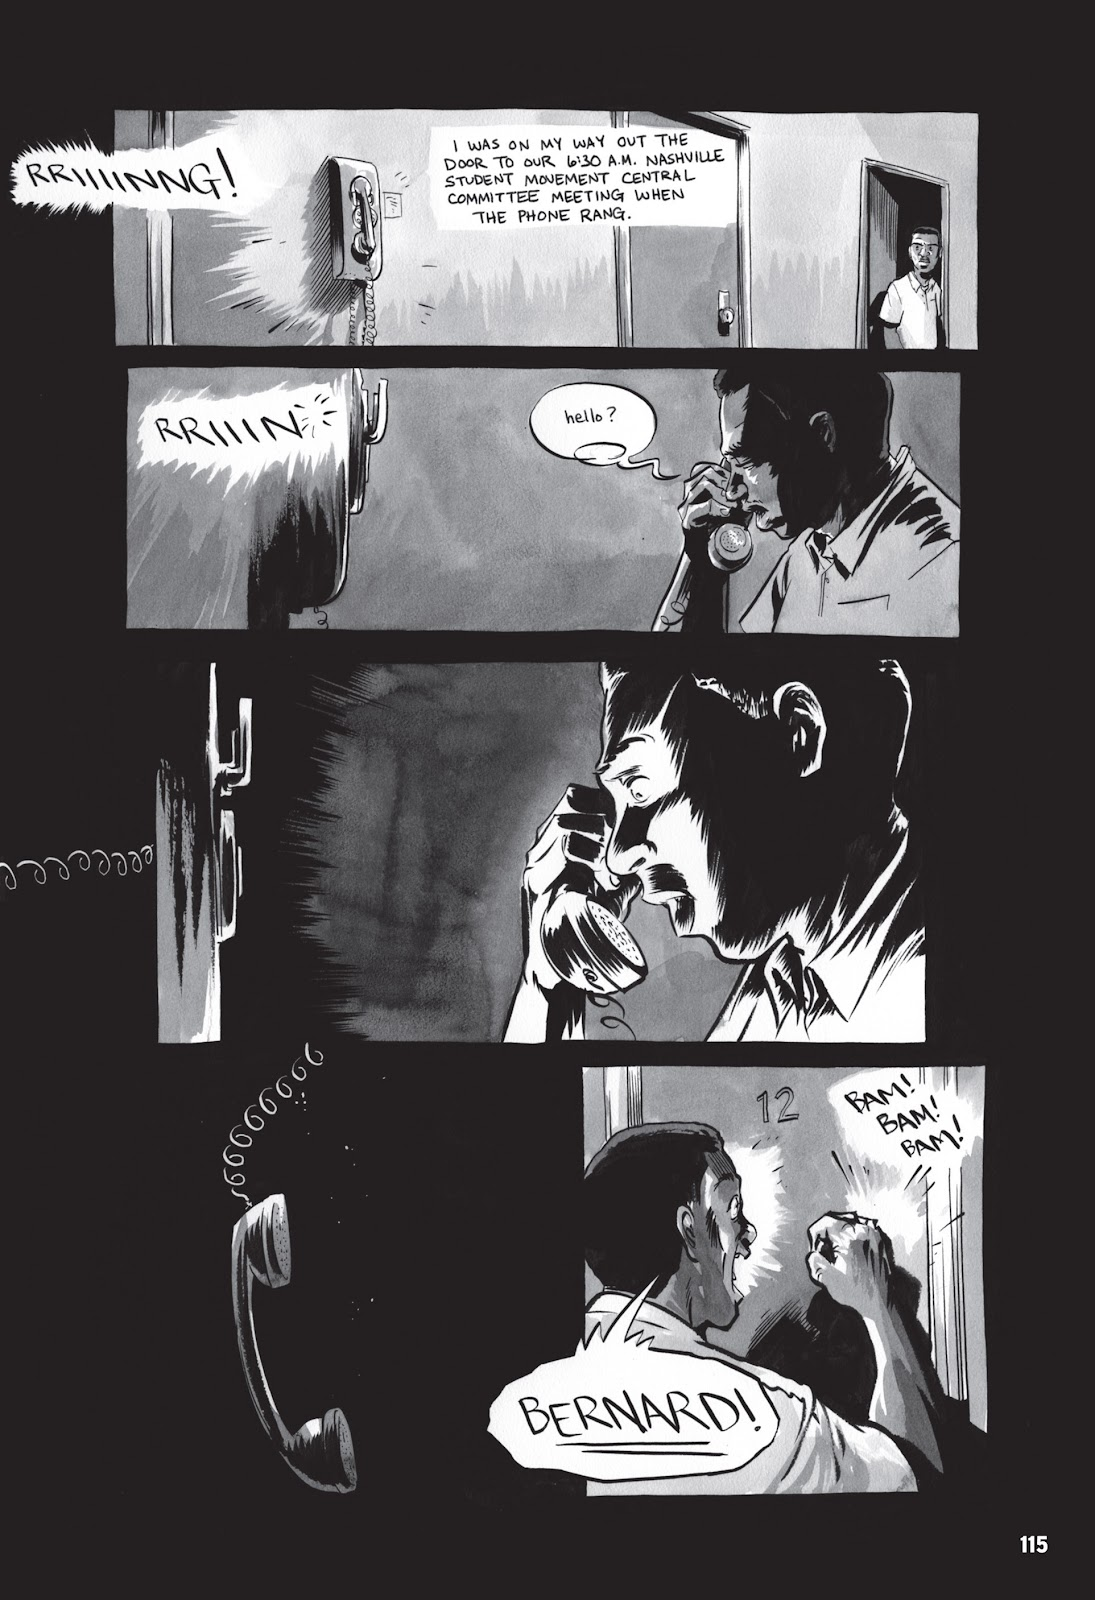 March 1 Page 112